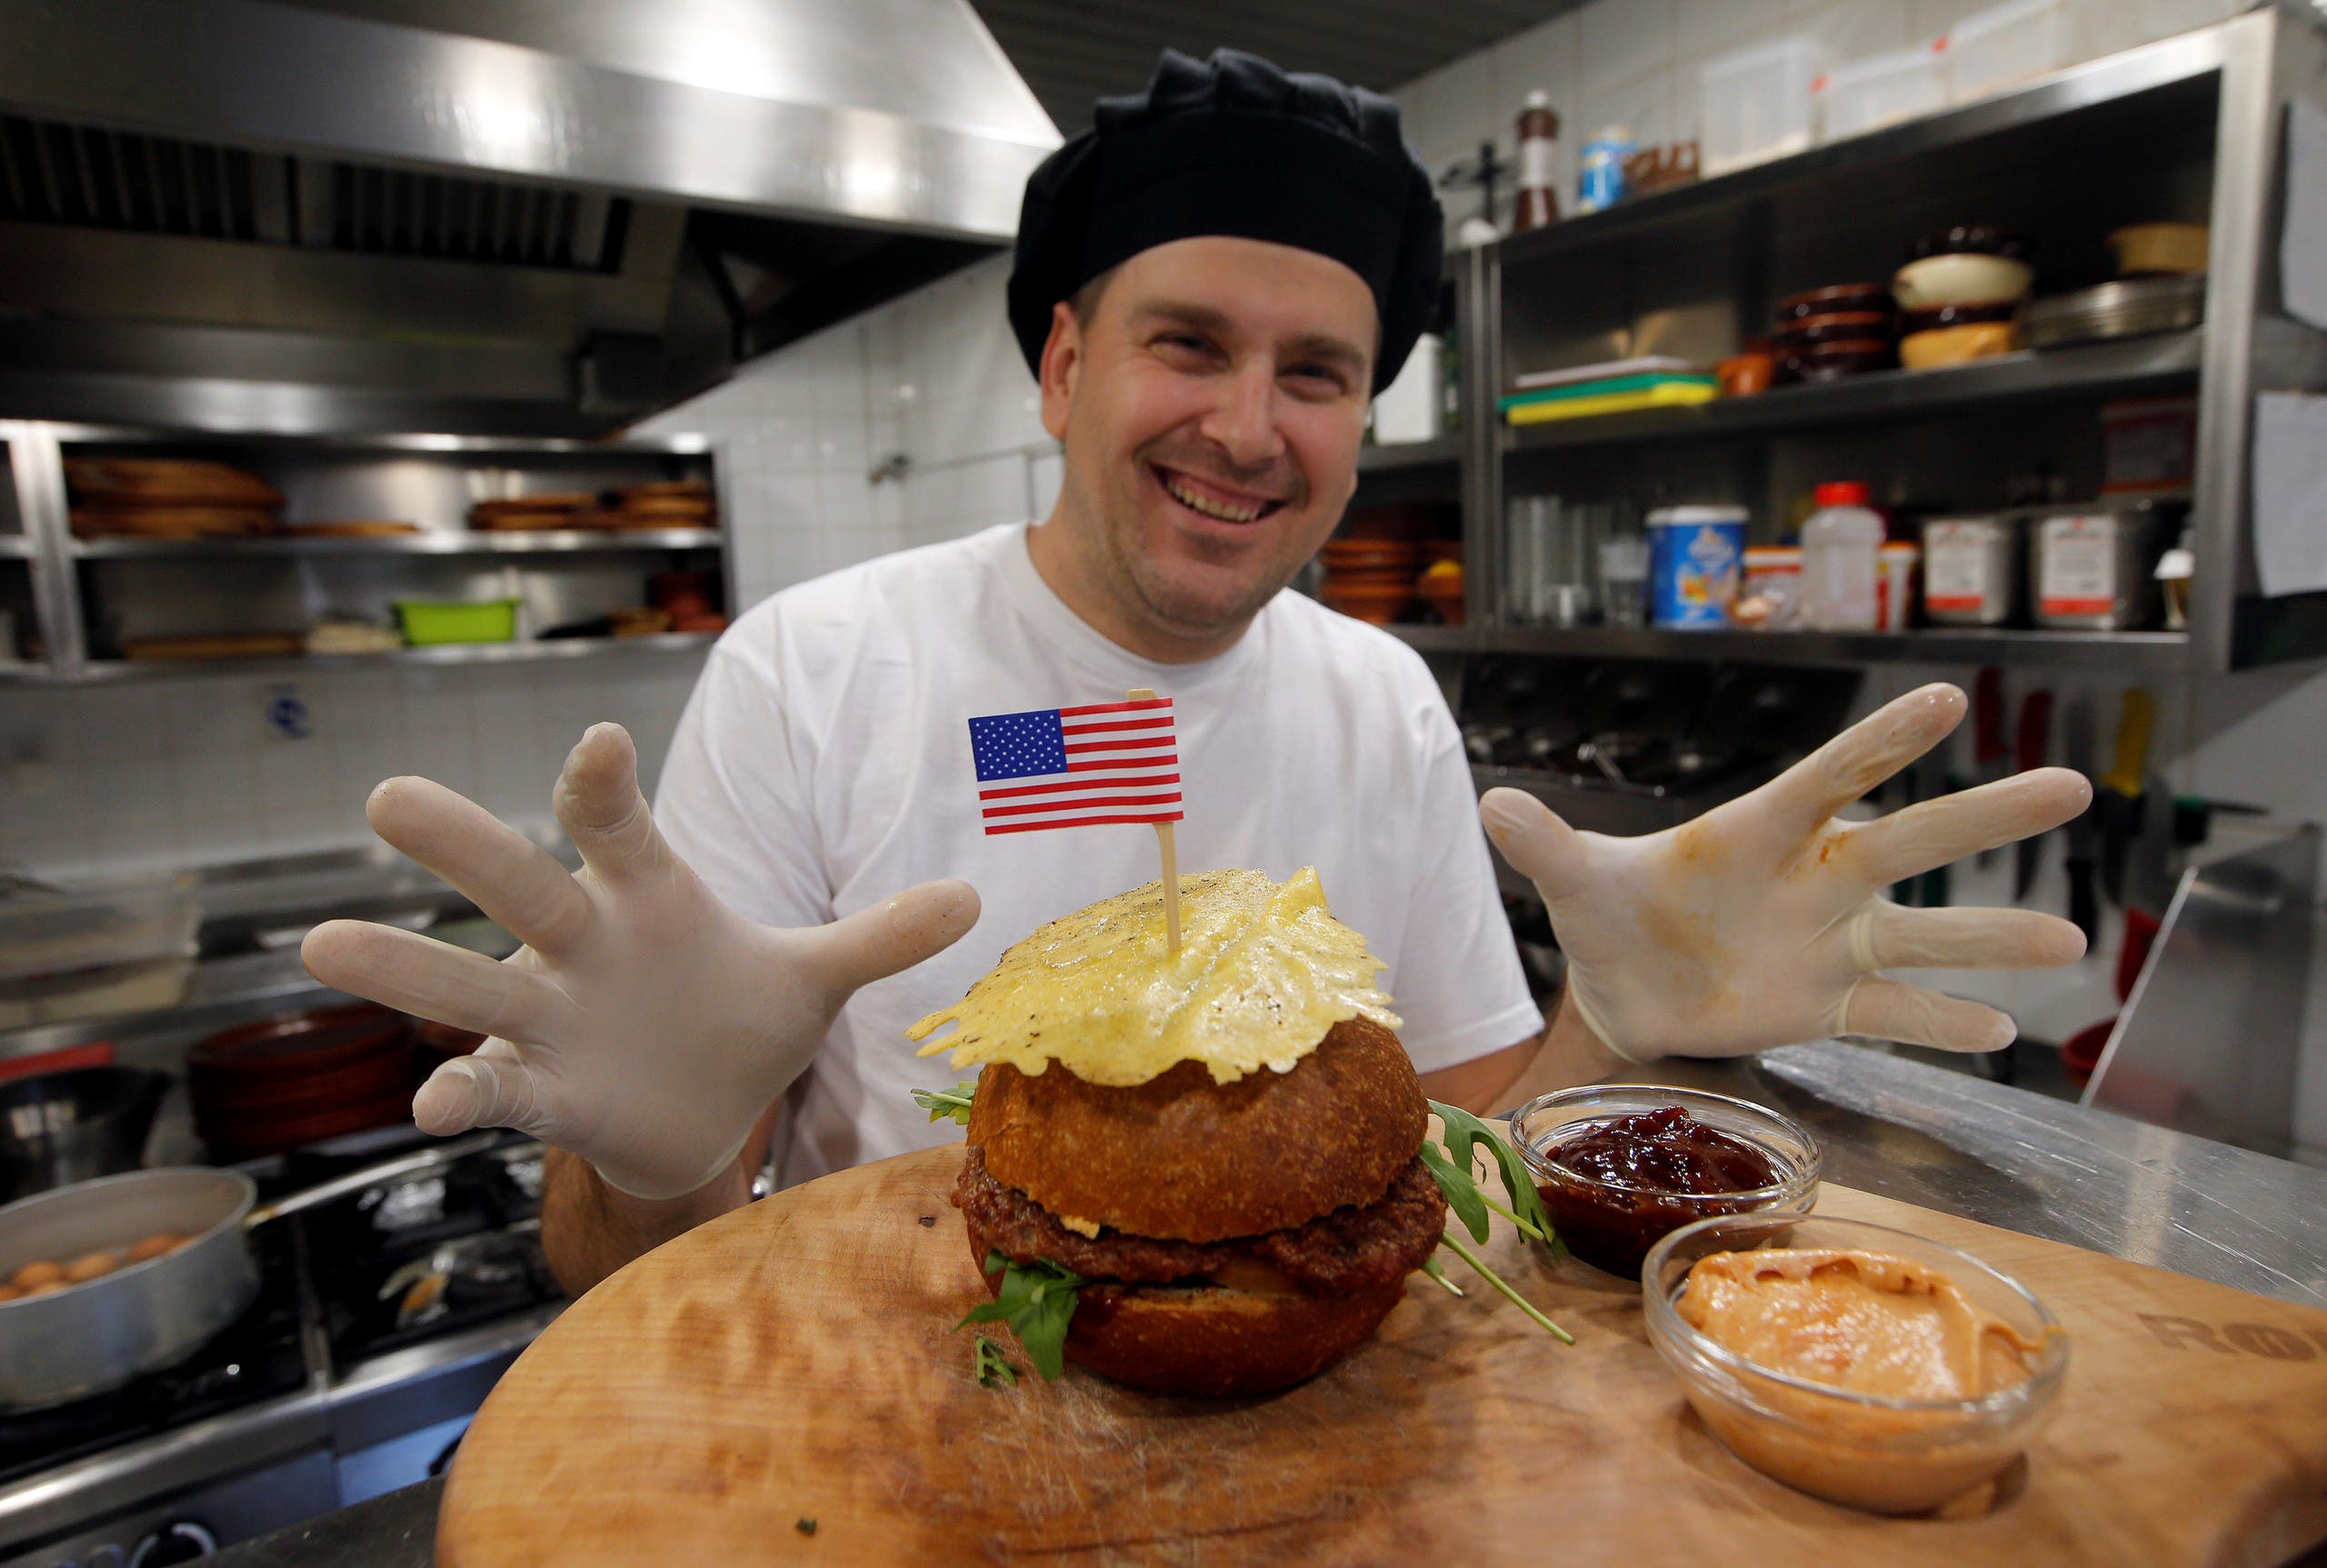 Chef Elvis Suhodoljac prepares a burger named President's burger in Melania  Trump's hometown of Sevnica, Slovenia January 20, 2017. (Reuters)